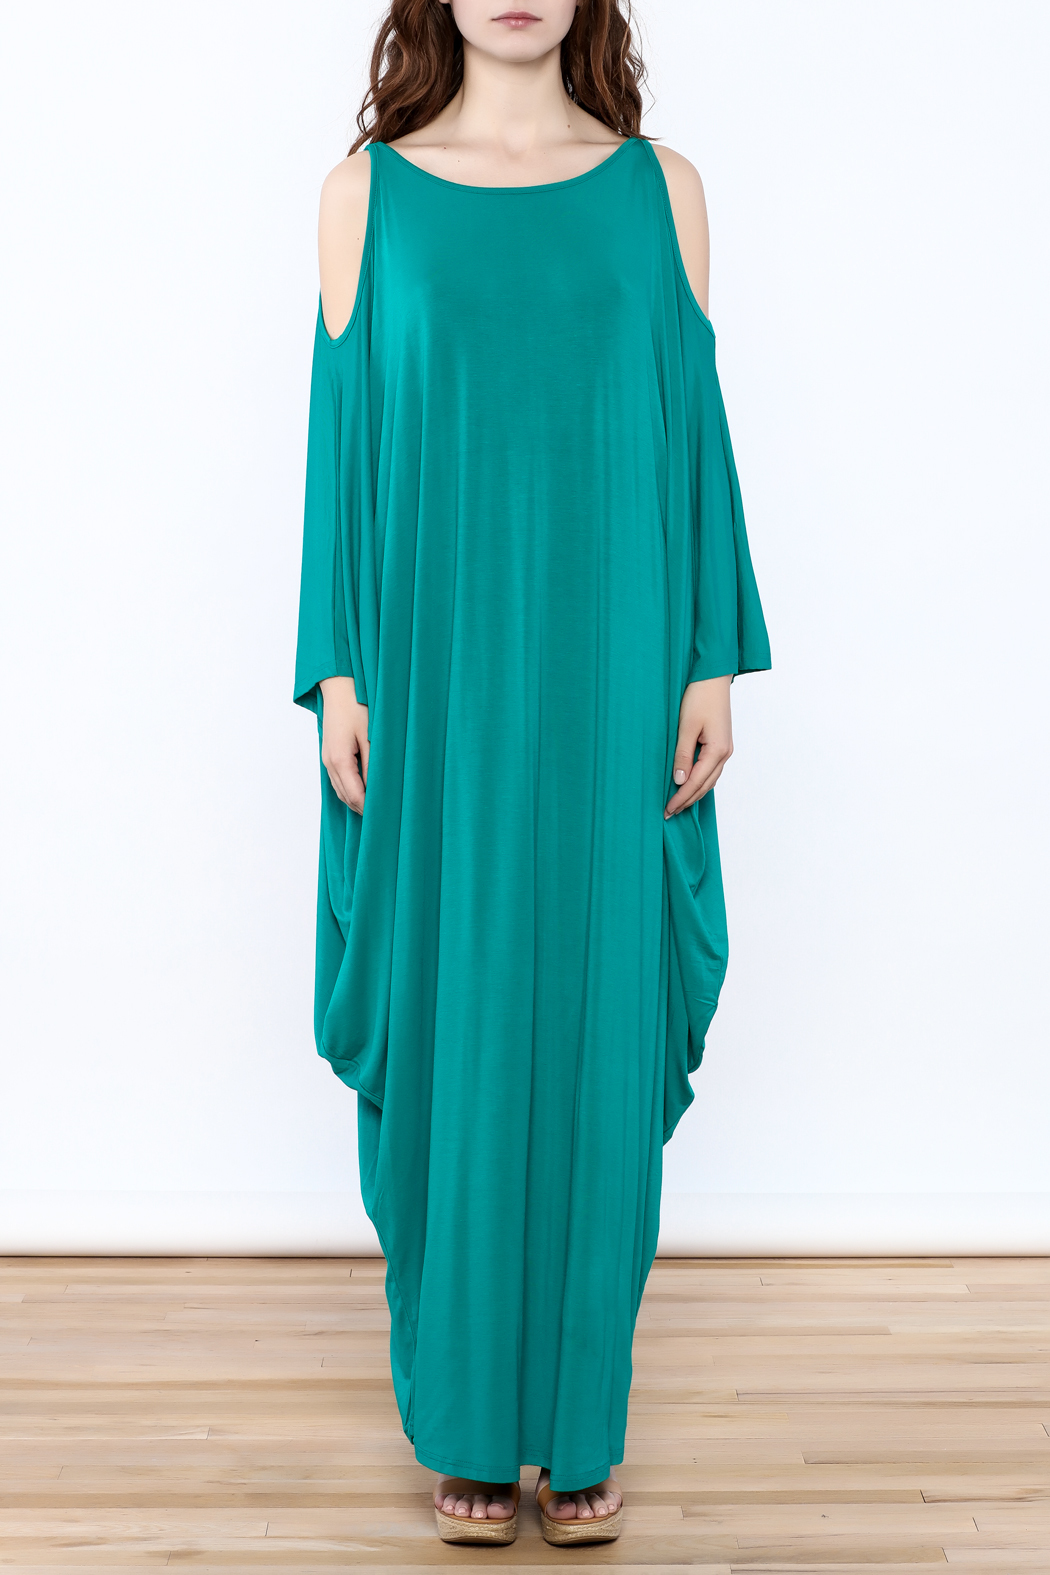 Join Clothes Teal Goddess Maxi Dress - Front Cropped Image